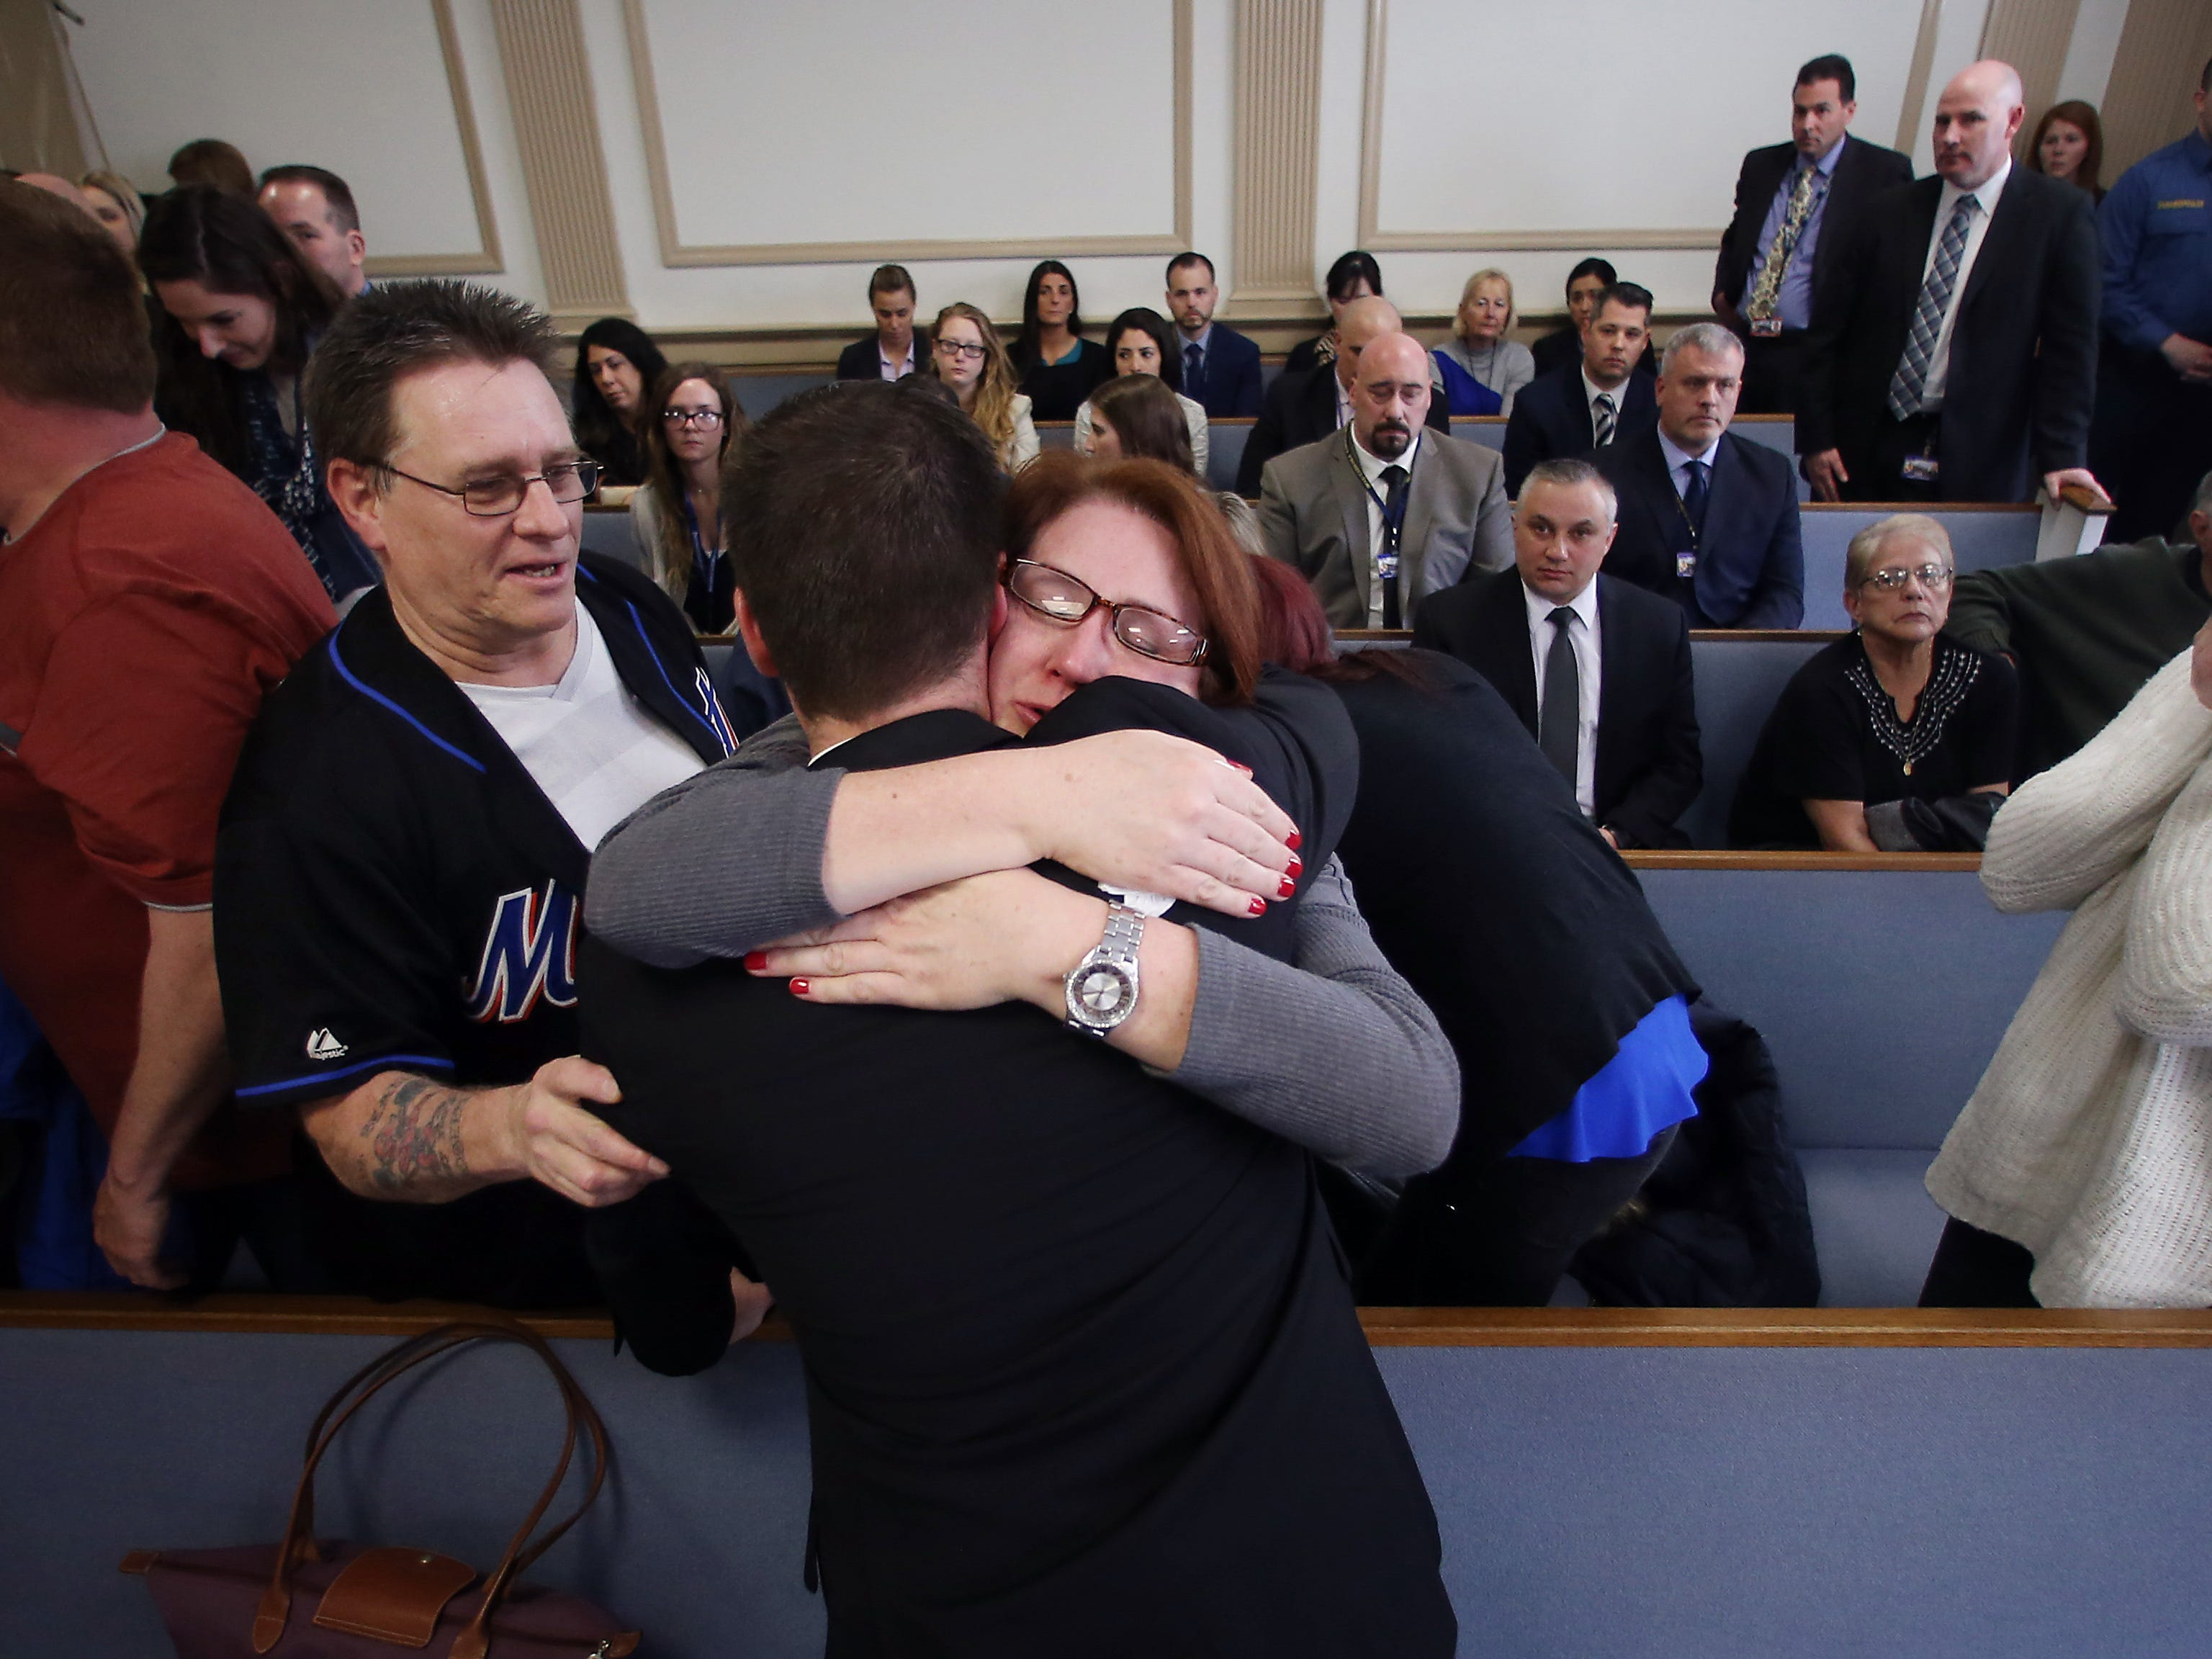 Teresa Higgins, former wife of victim Patrick Gilhuley gives a hug to Assistant Prosecutor Matthew Troiano after a jury deliberating over two days found Virginia Vertetis guilty of murder in Morris County Superior Court Monday. Prosecutors contended that Vertetis purposely shot Gilhuley at her Mount Olive home in 2014 out of desperation that he was breaking up with her. April 3, 2017, Morristown, NJ